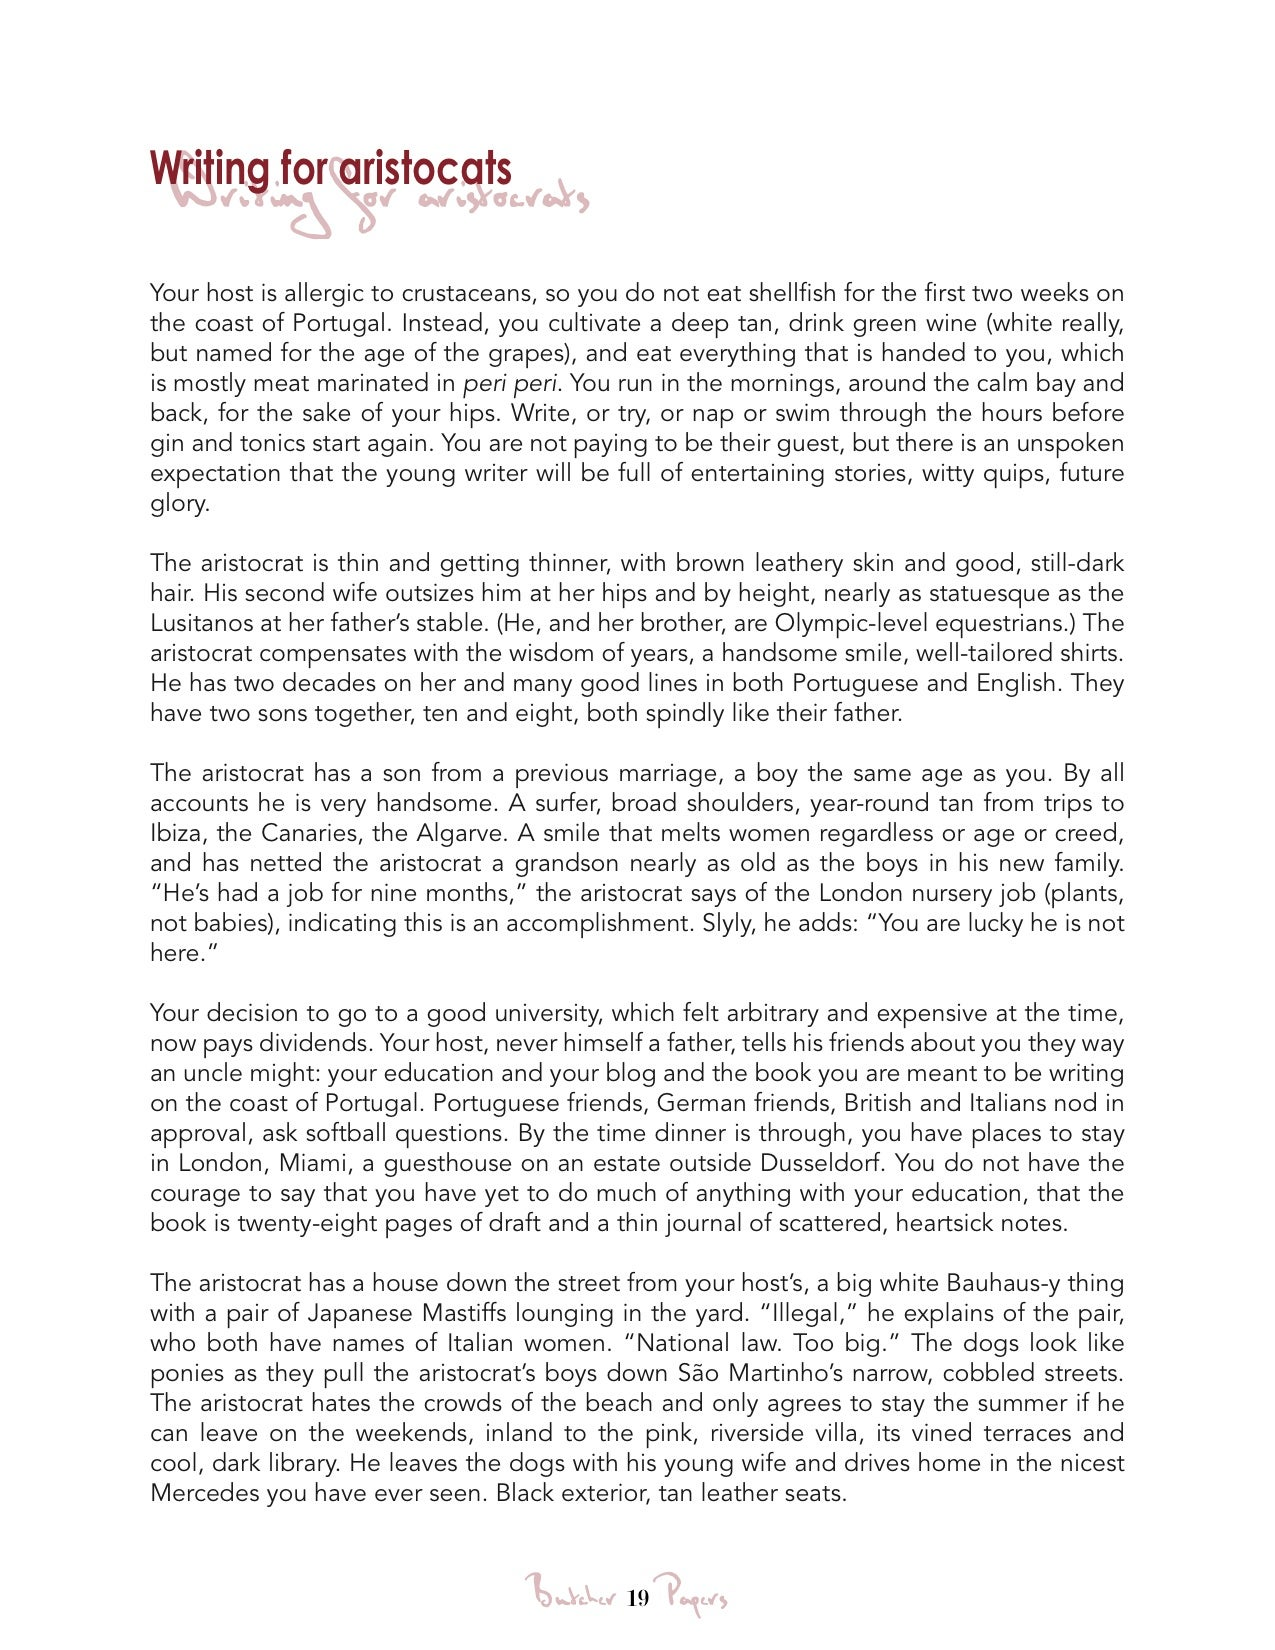 good and evil essay conclusion Home essays good vs evil - english essay good vs evil - english essay the poet makes it clear that good and evil doesn't exist as only opposites.